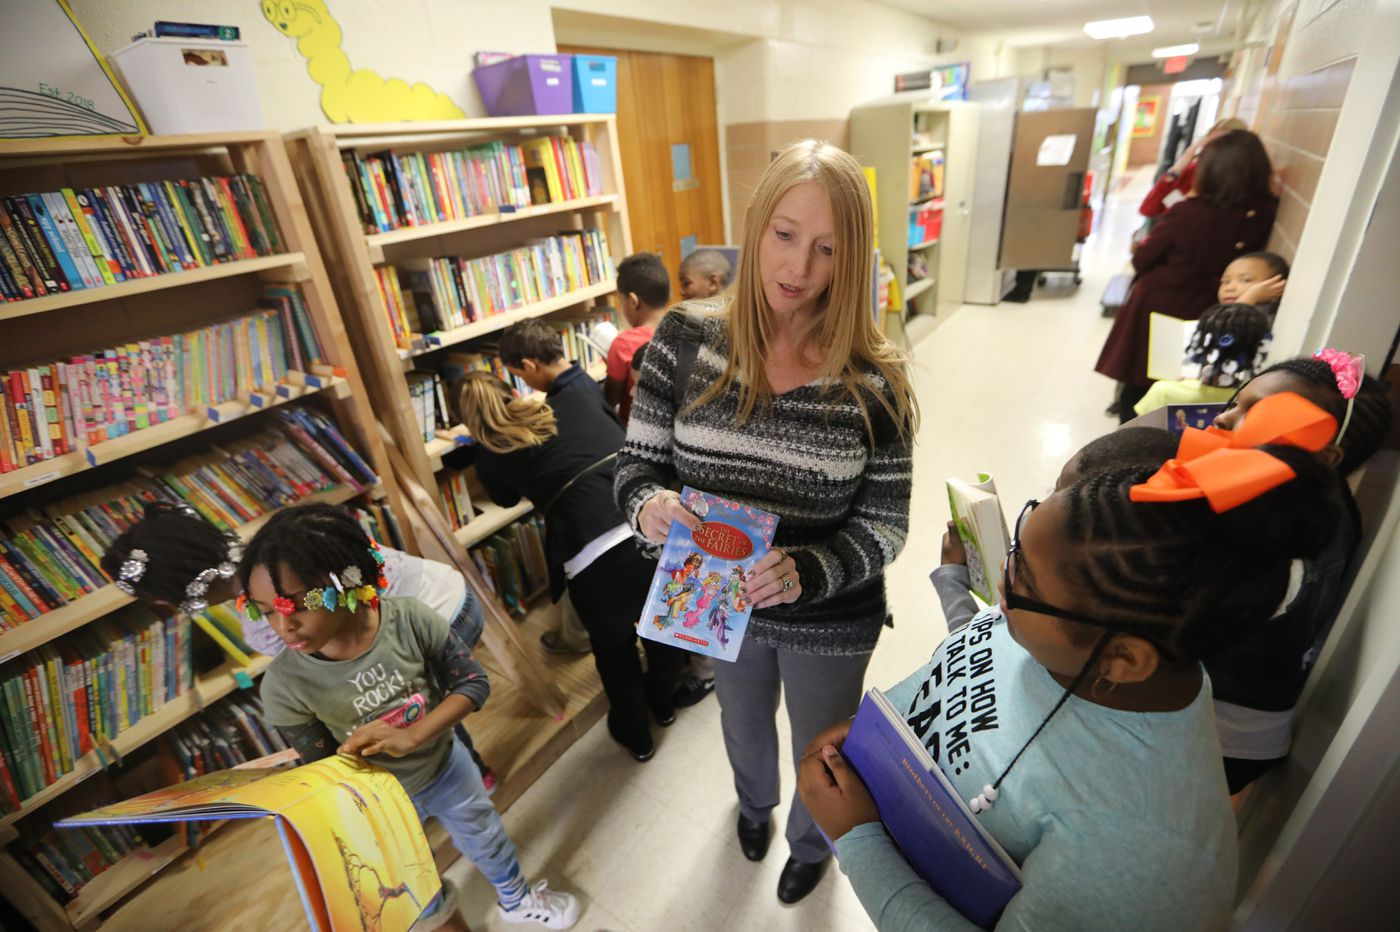 Chester Upland elementary school gets library, thanks to help from Widener students